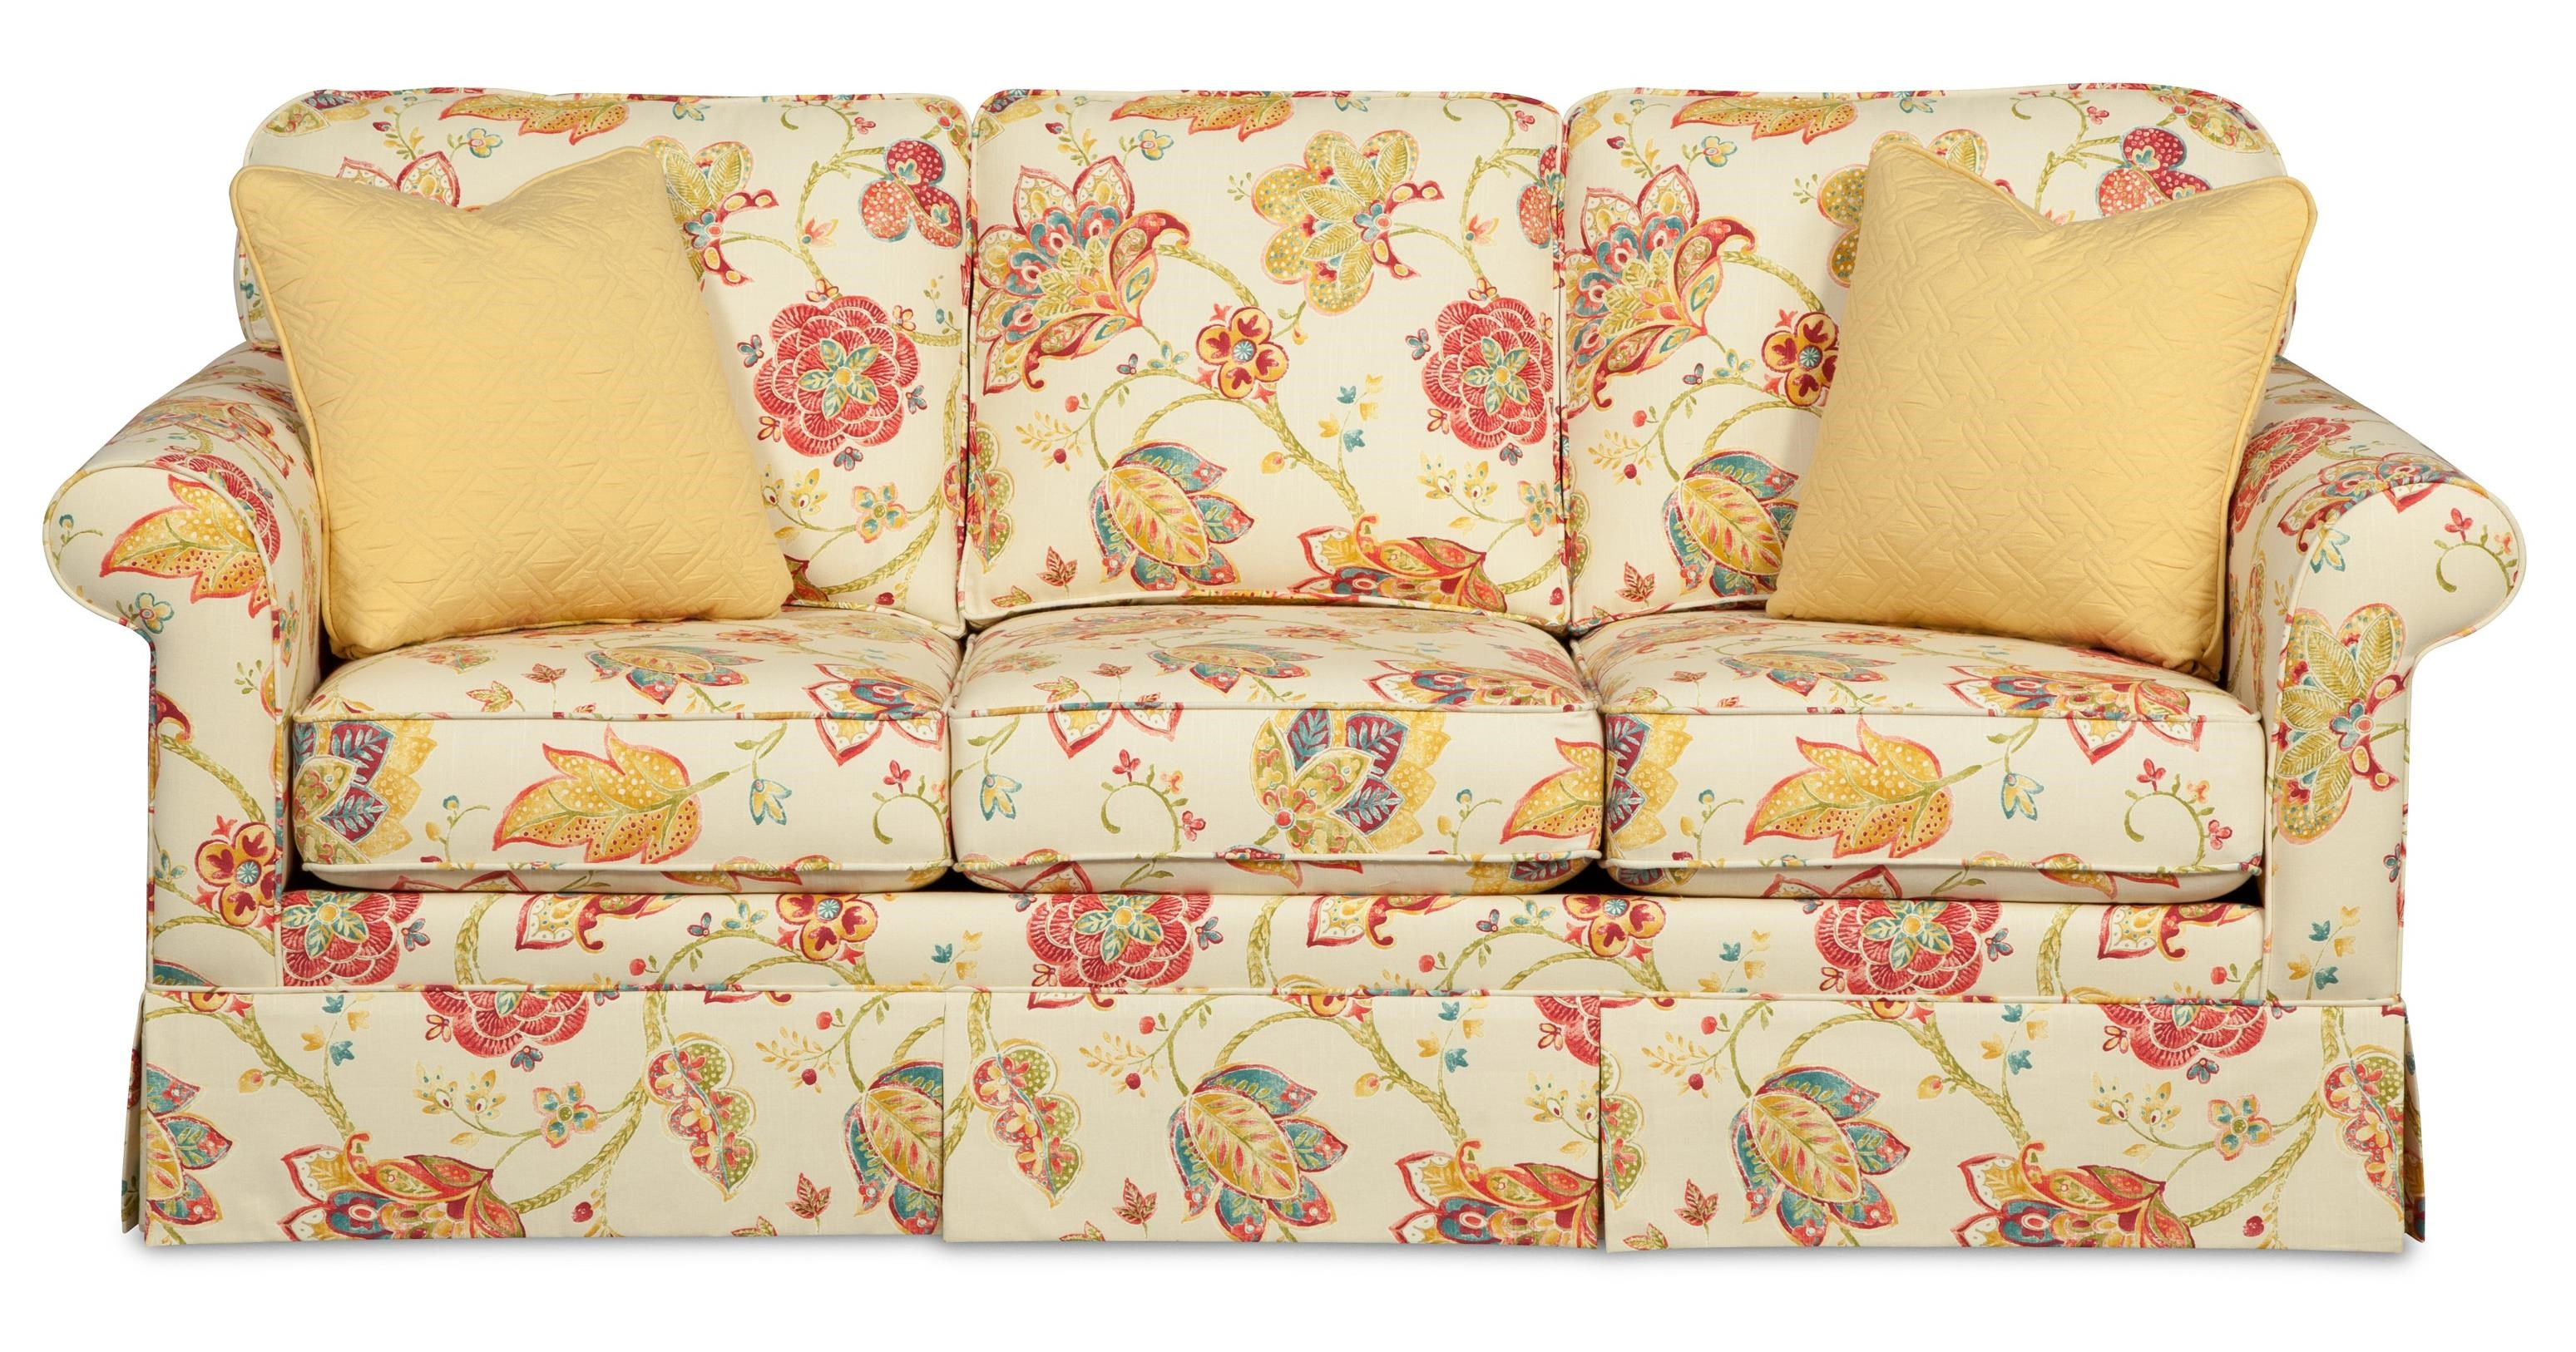 Charmant Craftmaster 9438 Traditional Sofa With Kick Pleat Skirt | Miskelly  Furniture | Sofas